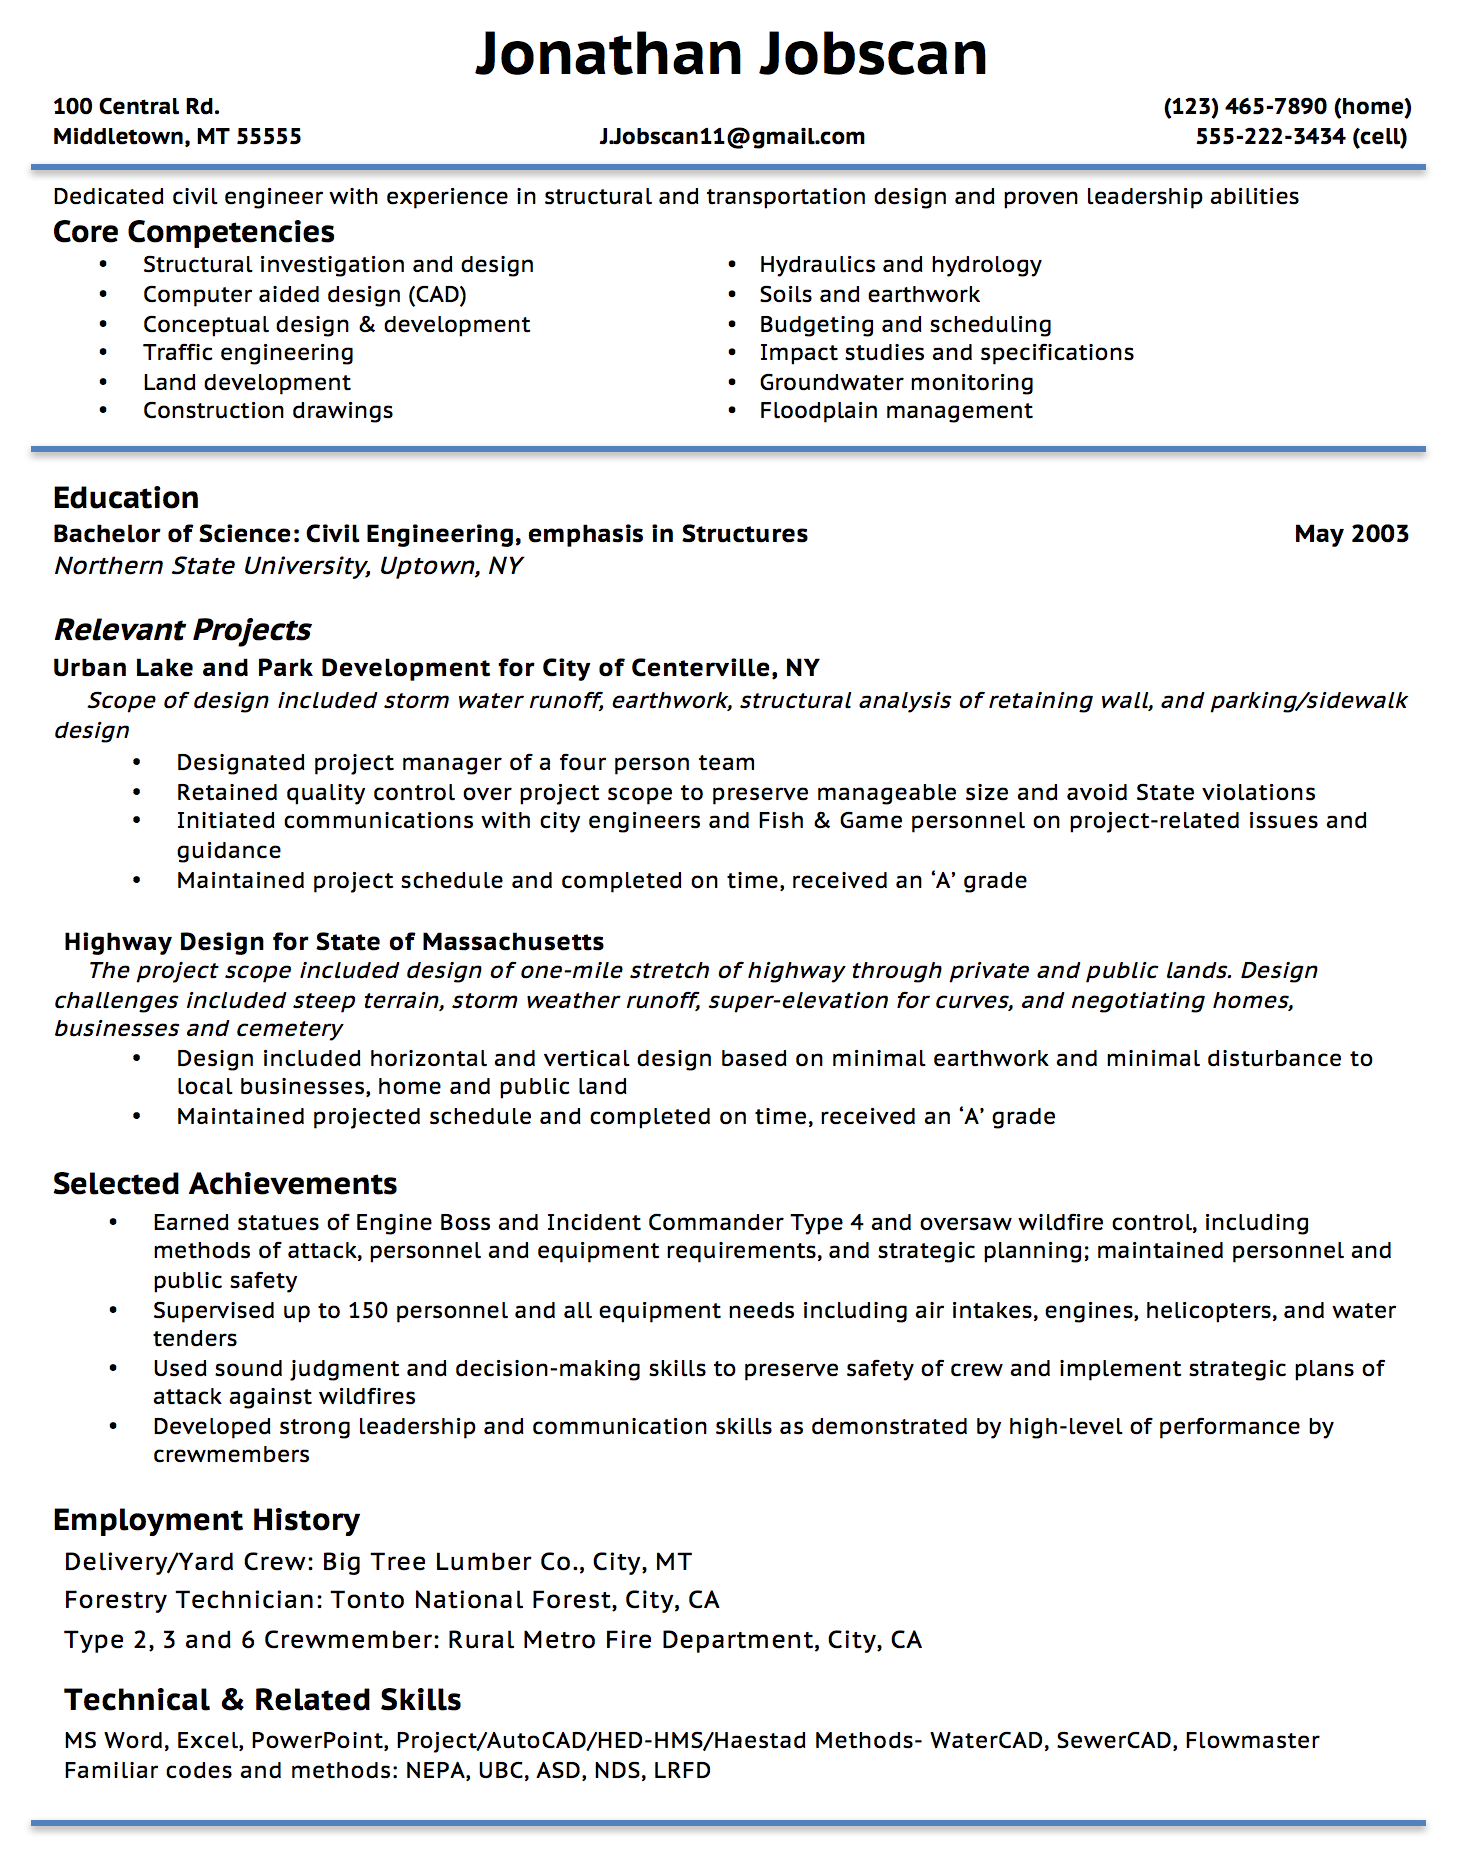 Jobscan\'s Resume Writing Guide | Jobscan | Resumes and Cover Letters ...